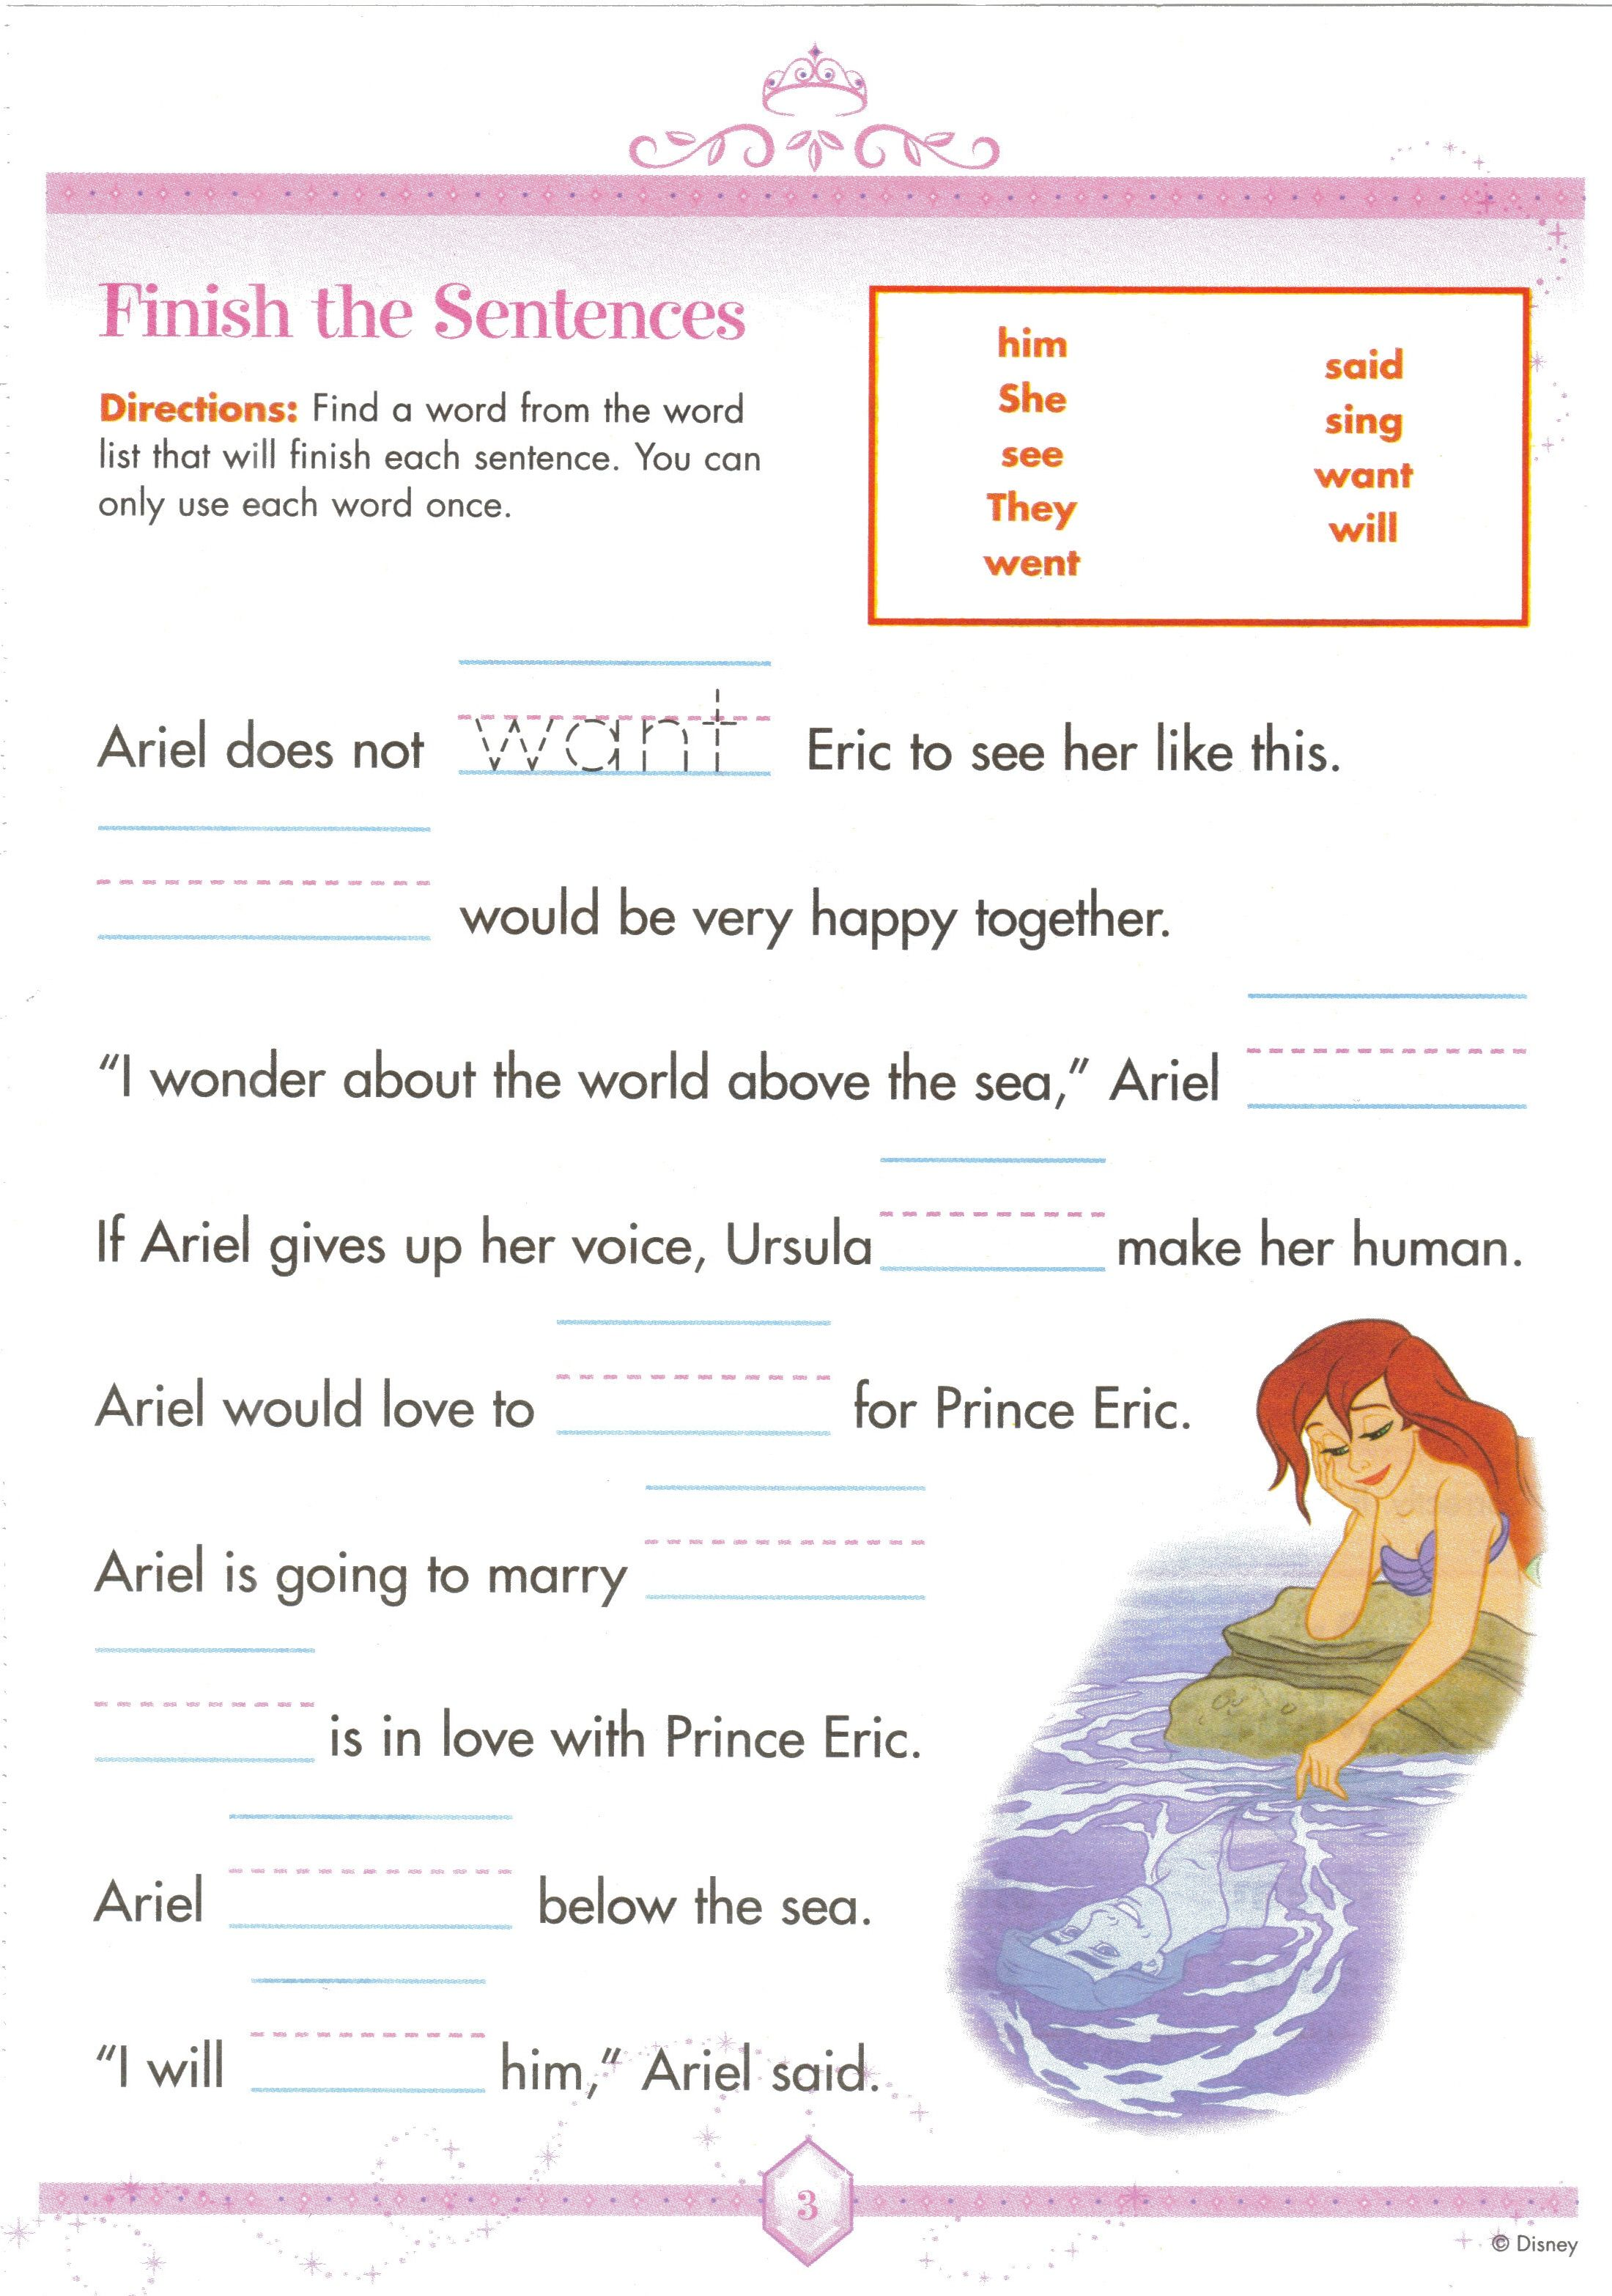 Proatmealus  Nice  Images About Worksheets On Pinterest  Fun Facts For Kids  With Entrancing  Images About Worksheets On Pinterest  Fun Facts For Kids Earth Day Worksheets And Jungles With Charming Adding By  Worksheet Also Biome Worksheets For Kids In Addition Year  English Worksheets Printable And Root Word Worksheets Th Grade As Well As Protect Worksheet Excel  Additionally Free Printable Sequence Of Events Worksheets From Pinterestcom With Proatmealus  Entrancing  Images About Worksheets On Pinterest  Fun Facts For Kids  With Charming  Images About Worksheets On Pinterest  Fun Facts For Kids Earth Day Worksheets And Jungles And Nice Adding By  Worksheet Also Biome Worksheets For Kids In Addition Year  English Worksheets Printable From Pinterestcom